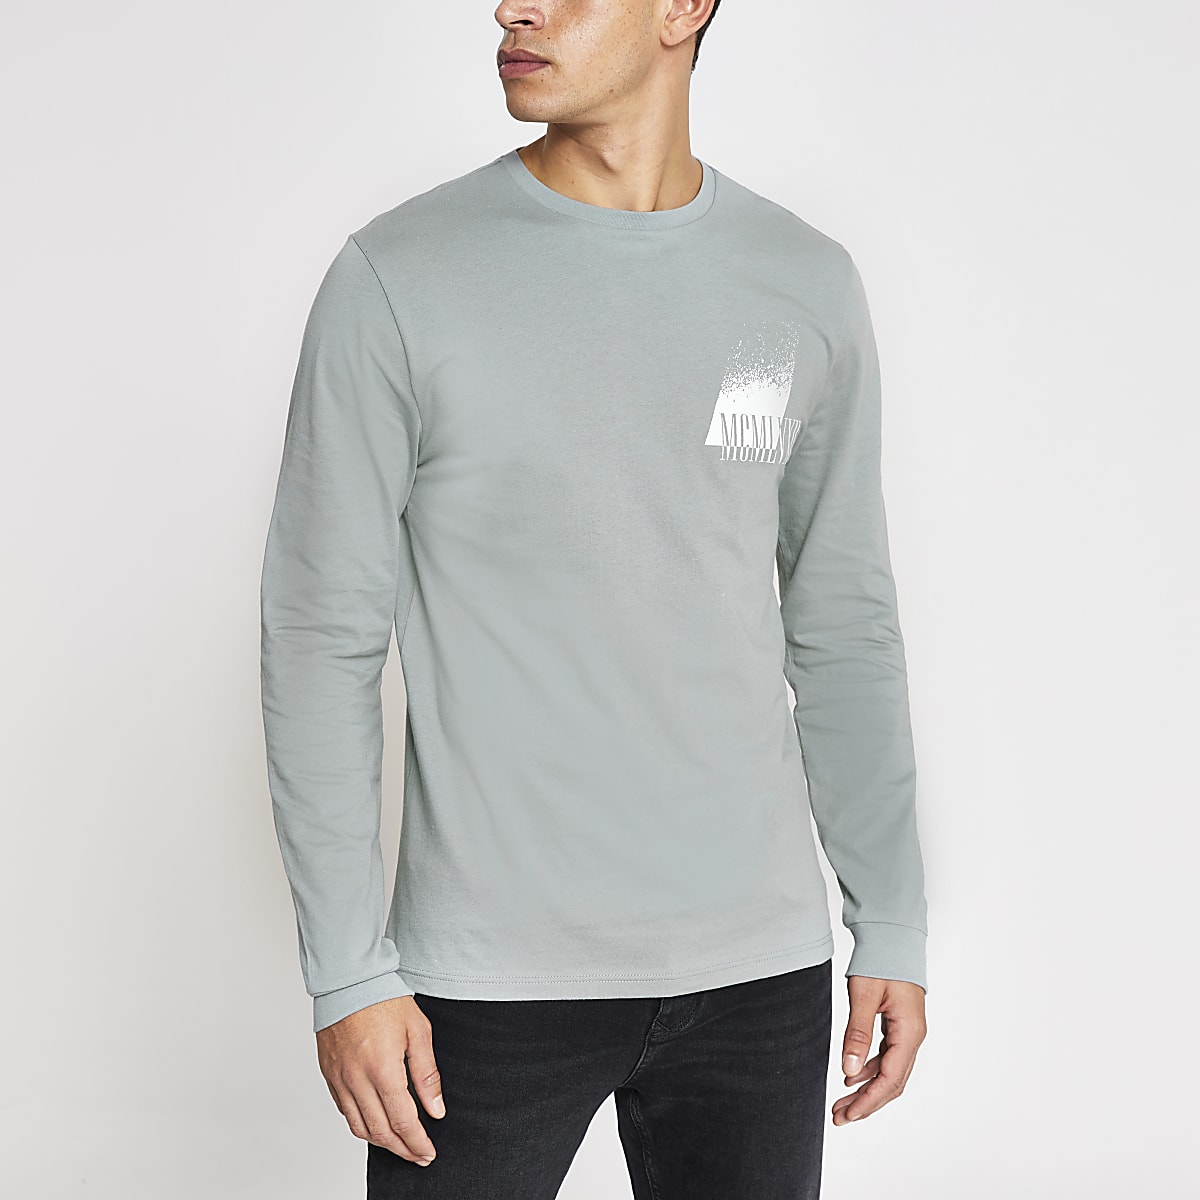 Grey MCMLVXII long sleeve slim fit T-shirt